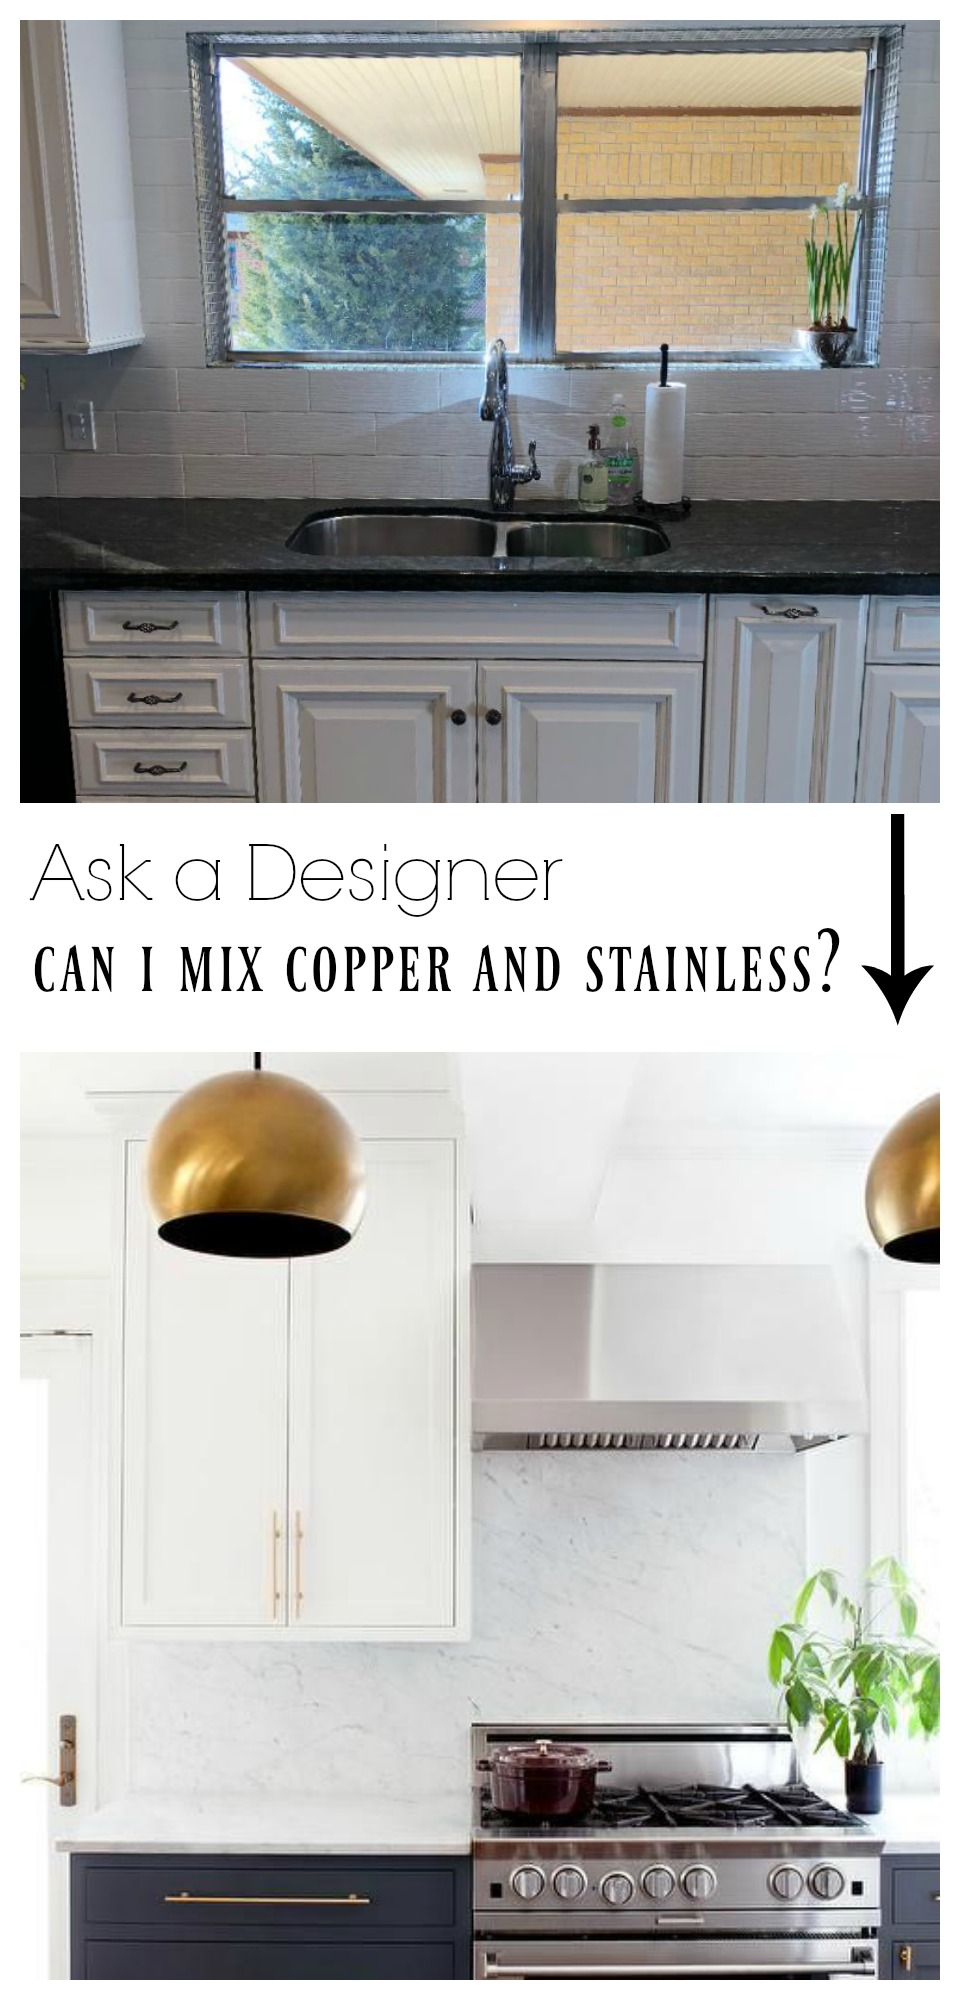 Ask a Designer- Can I mix Copper and Stainless?